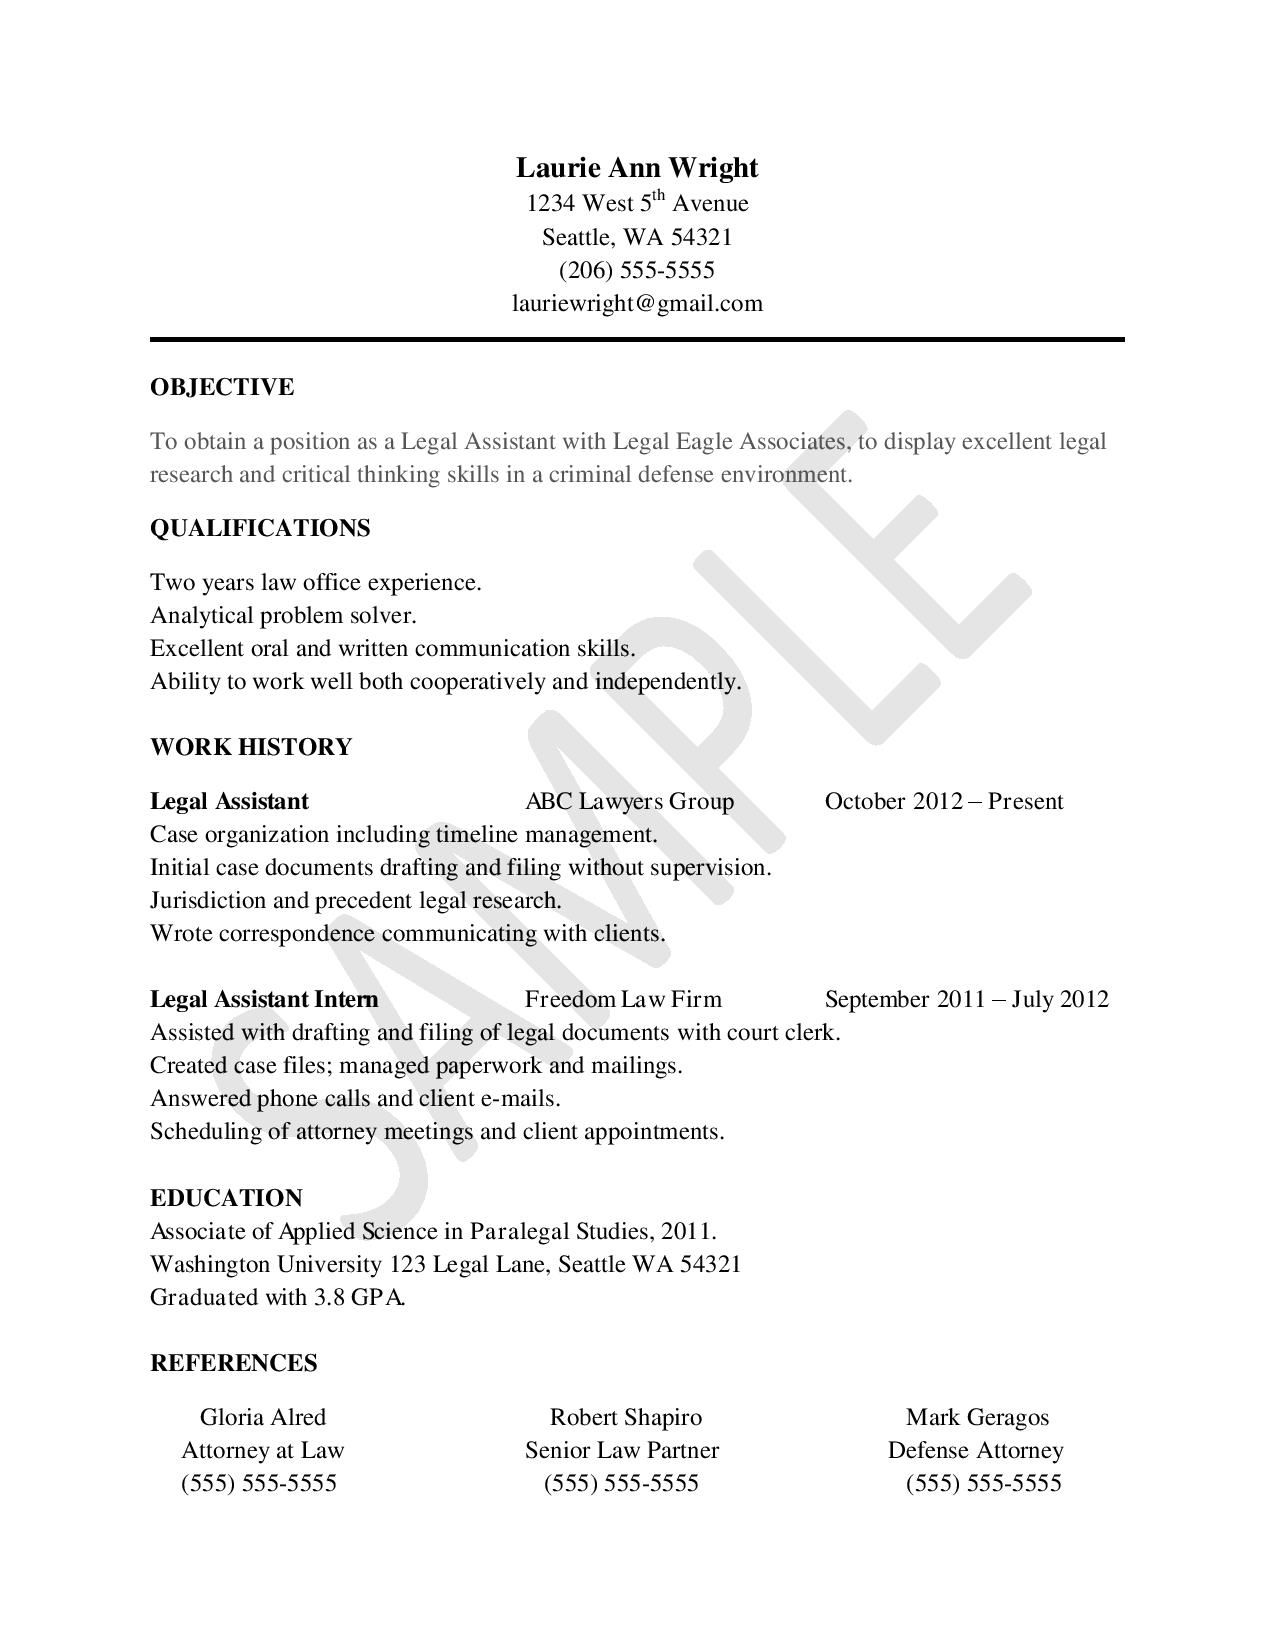 Sample Resume For Legal Assistants Legal Assistant Info Sample